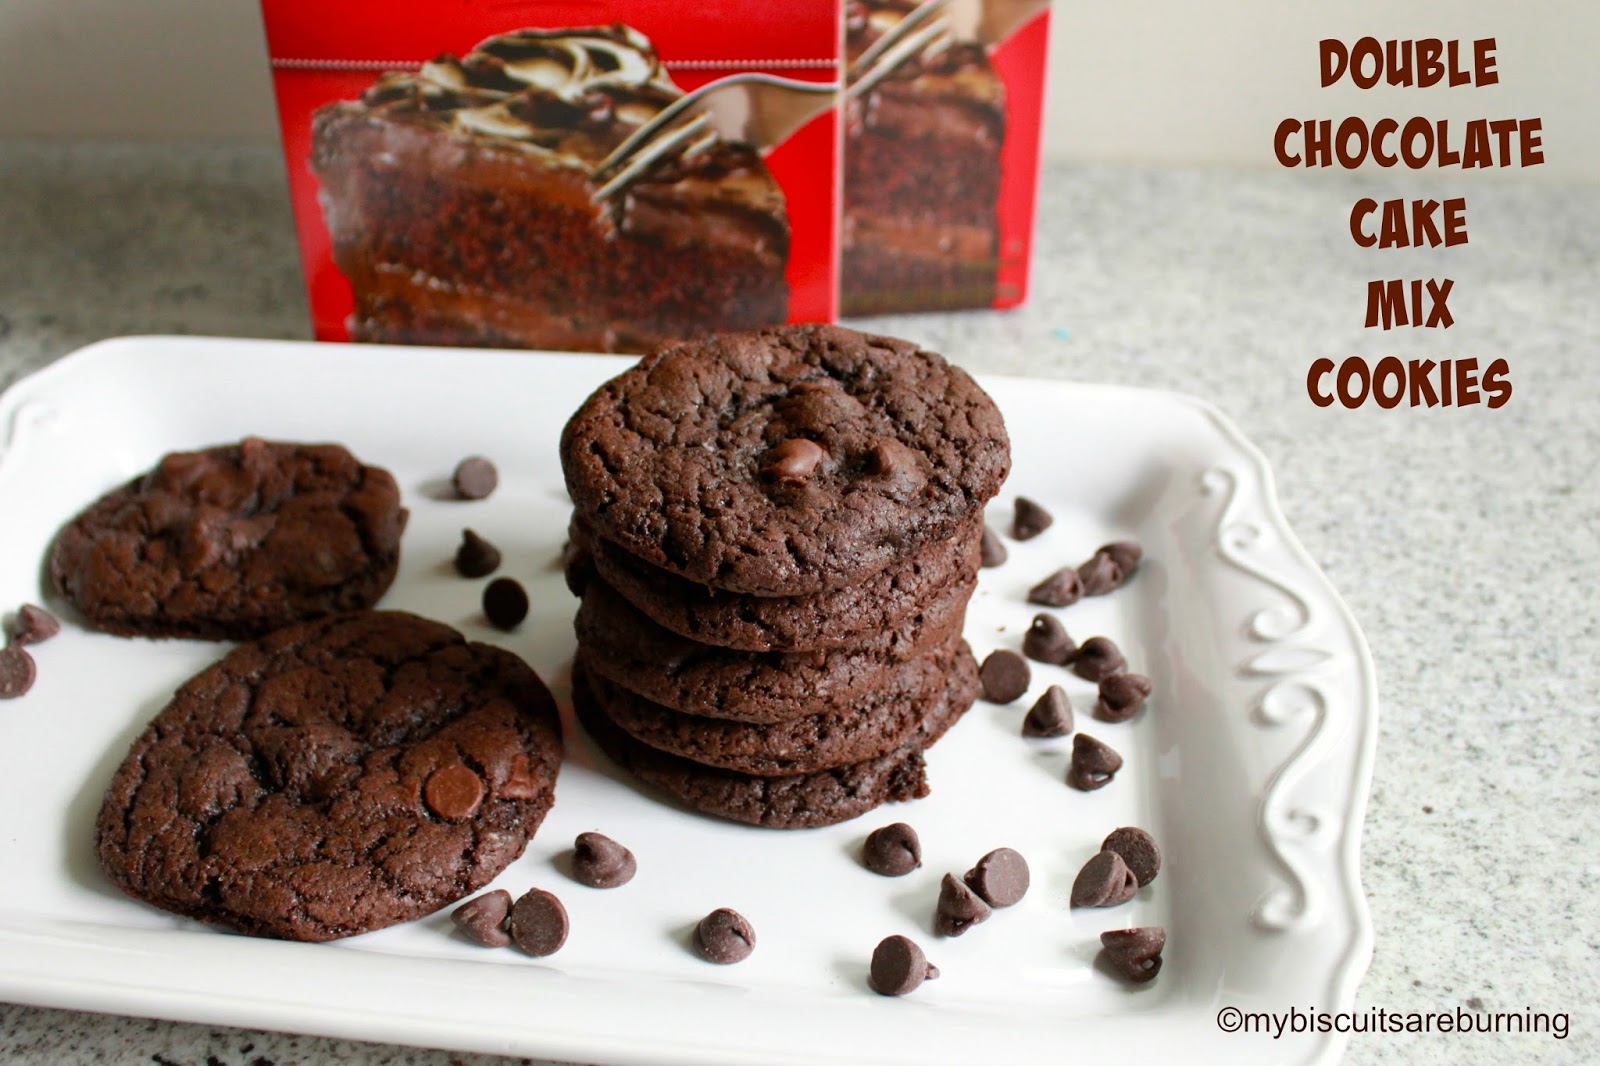 Double Chocolate Cake Mix Cookies | My Biscuits are Burning